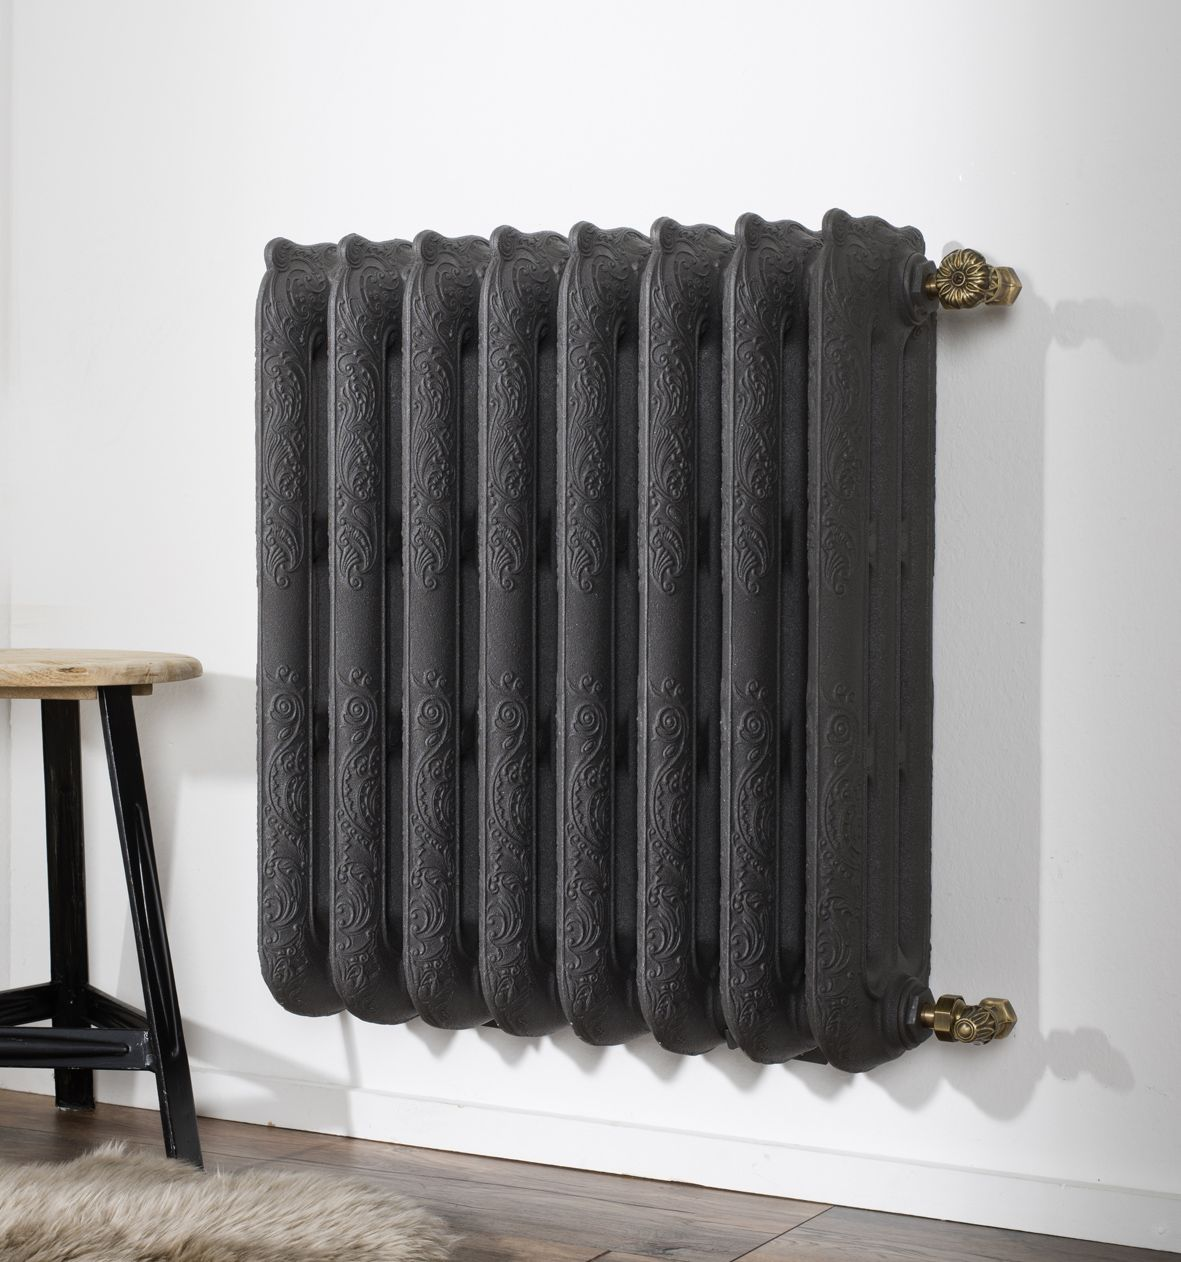 radiateur en fonte mural sans pied collection belle. Black Bedroom Furniture Sets. Home Design Ideas